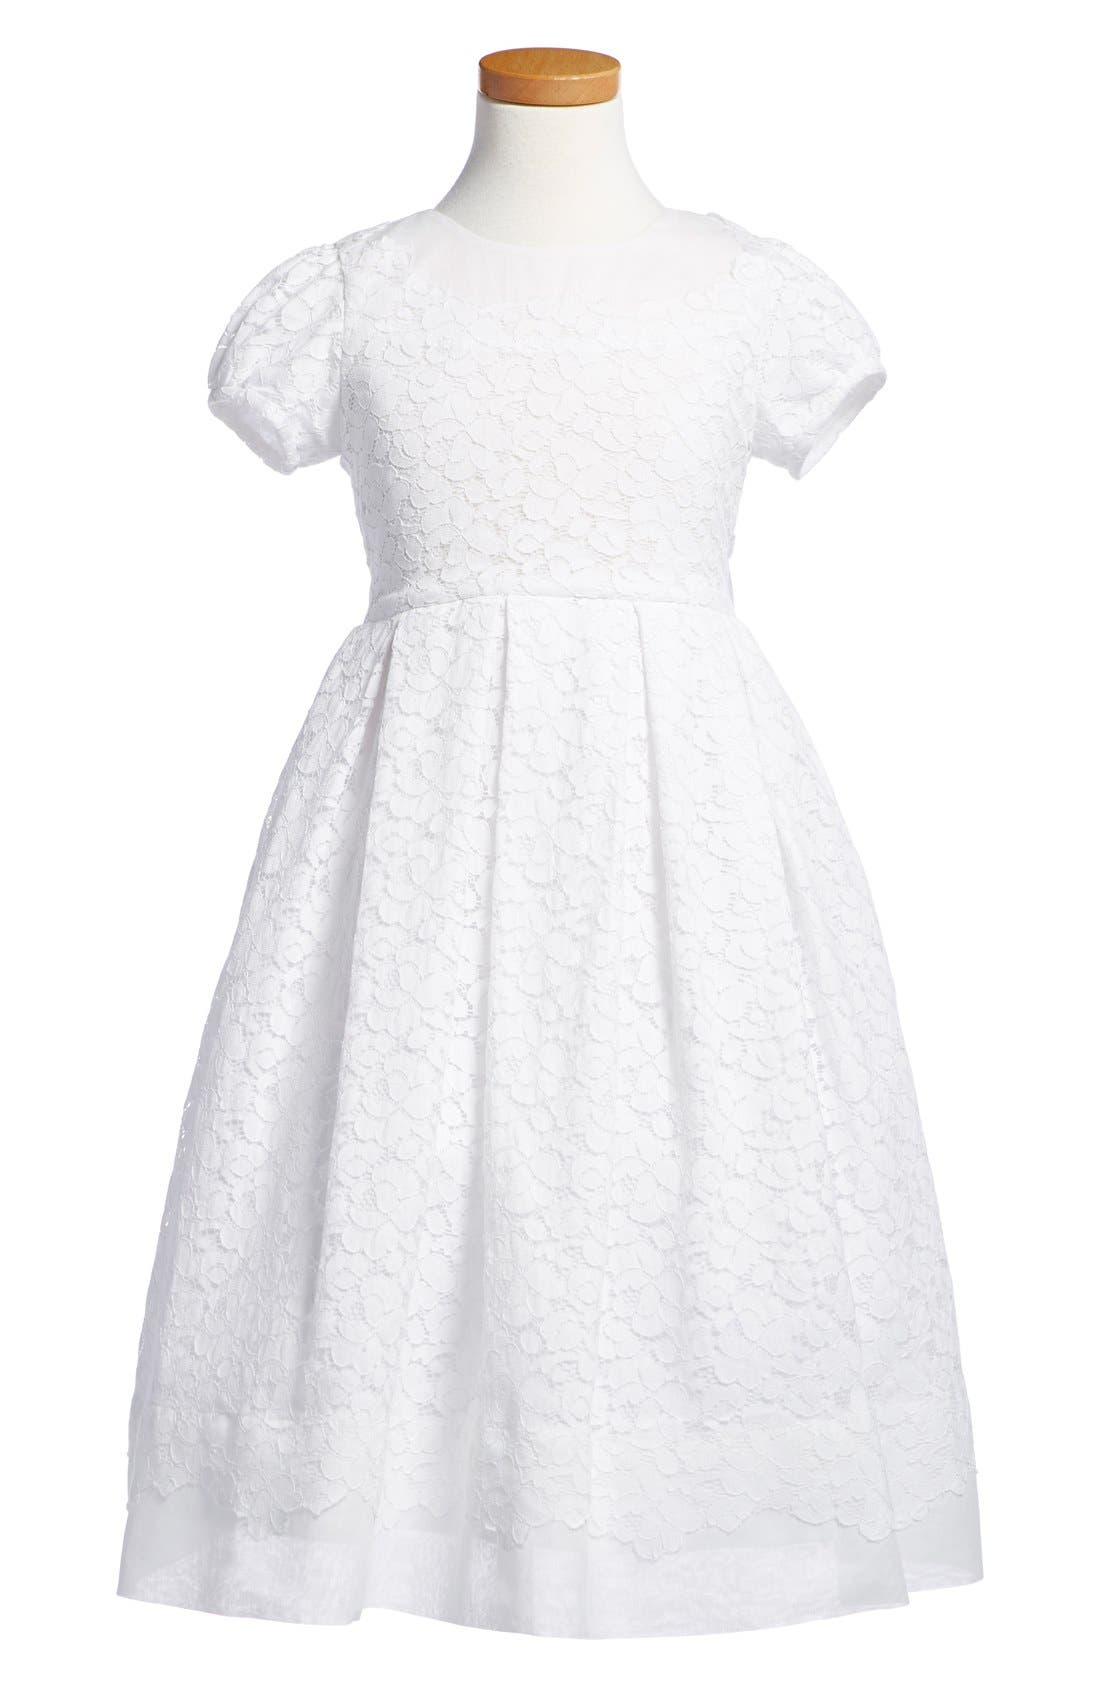 Isabel Garreton 'Gala' Organdy Dress (Little Girls & Big Girls)